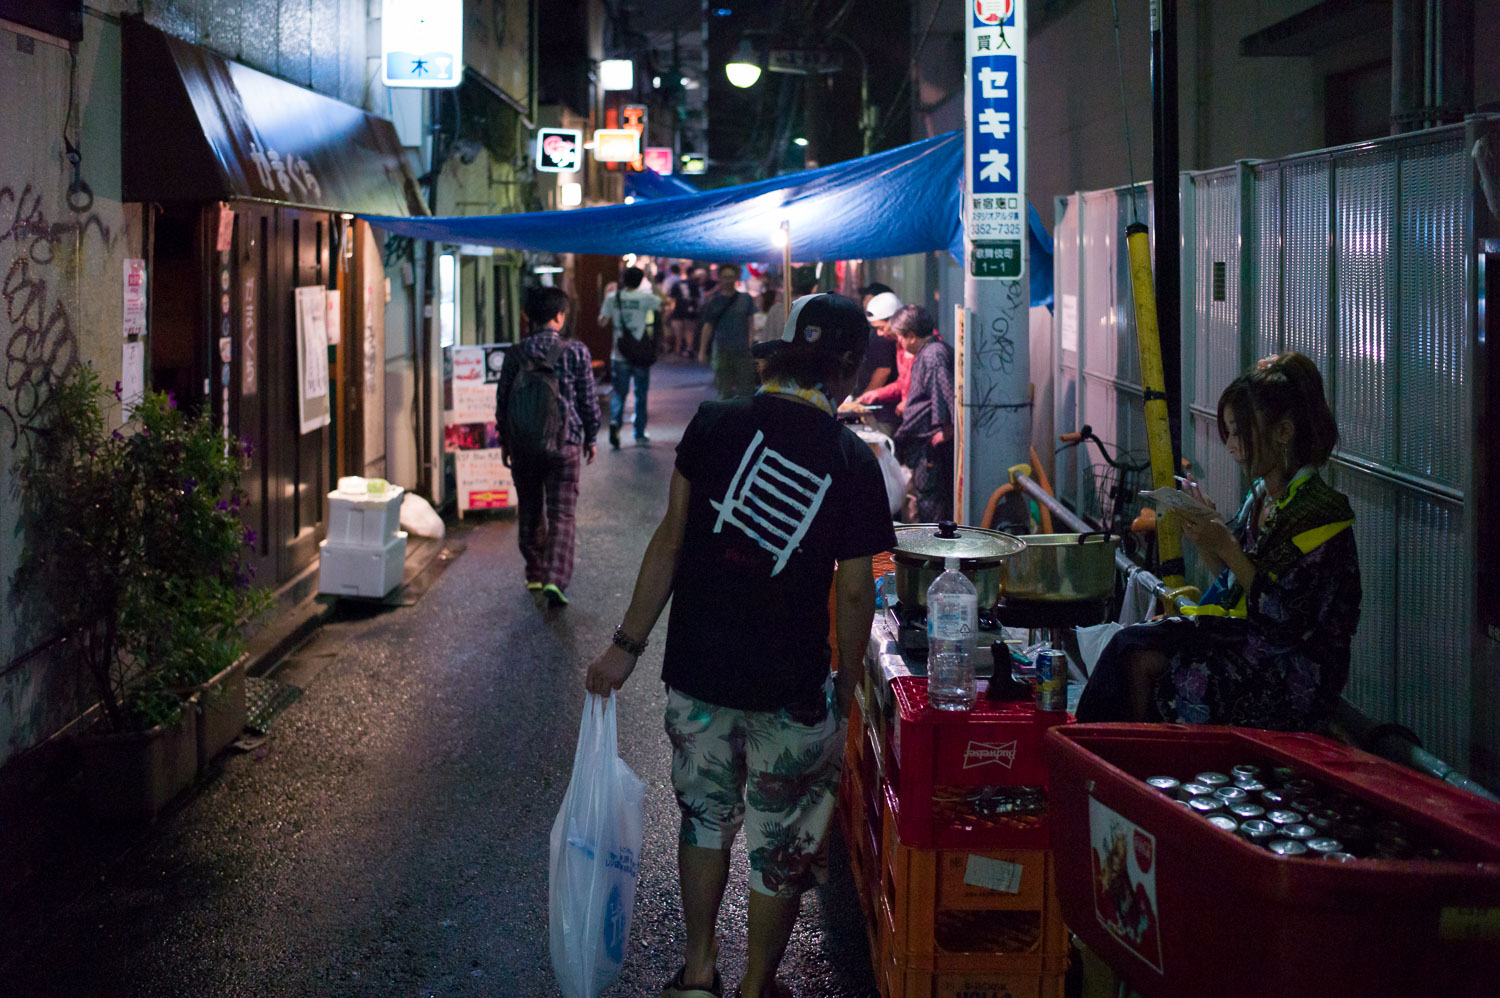 Refreshing to see Golden Gai in a festival atmosphere